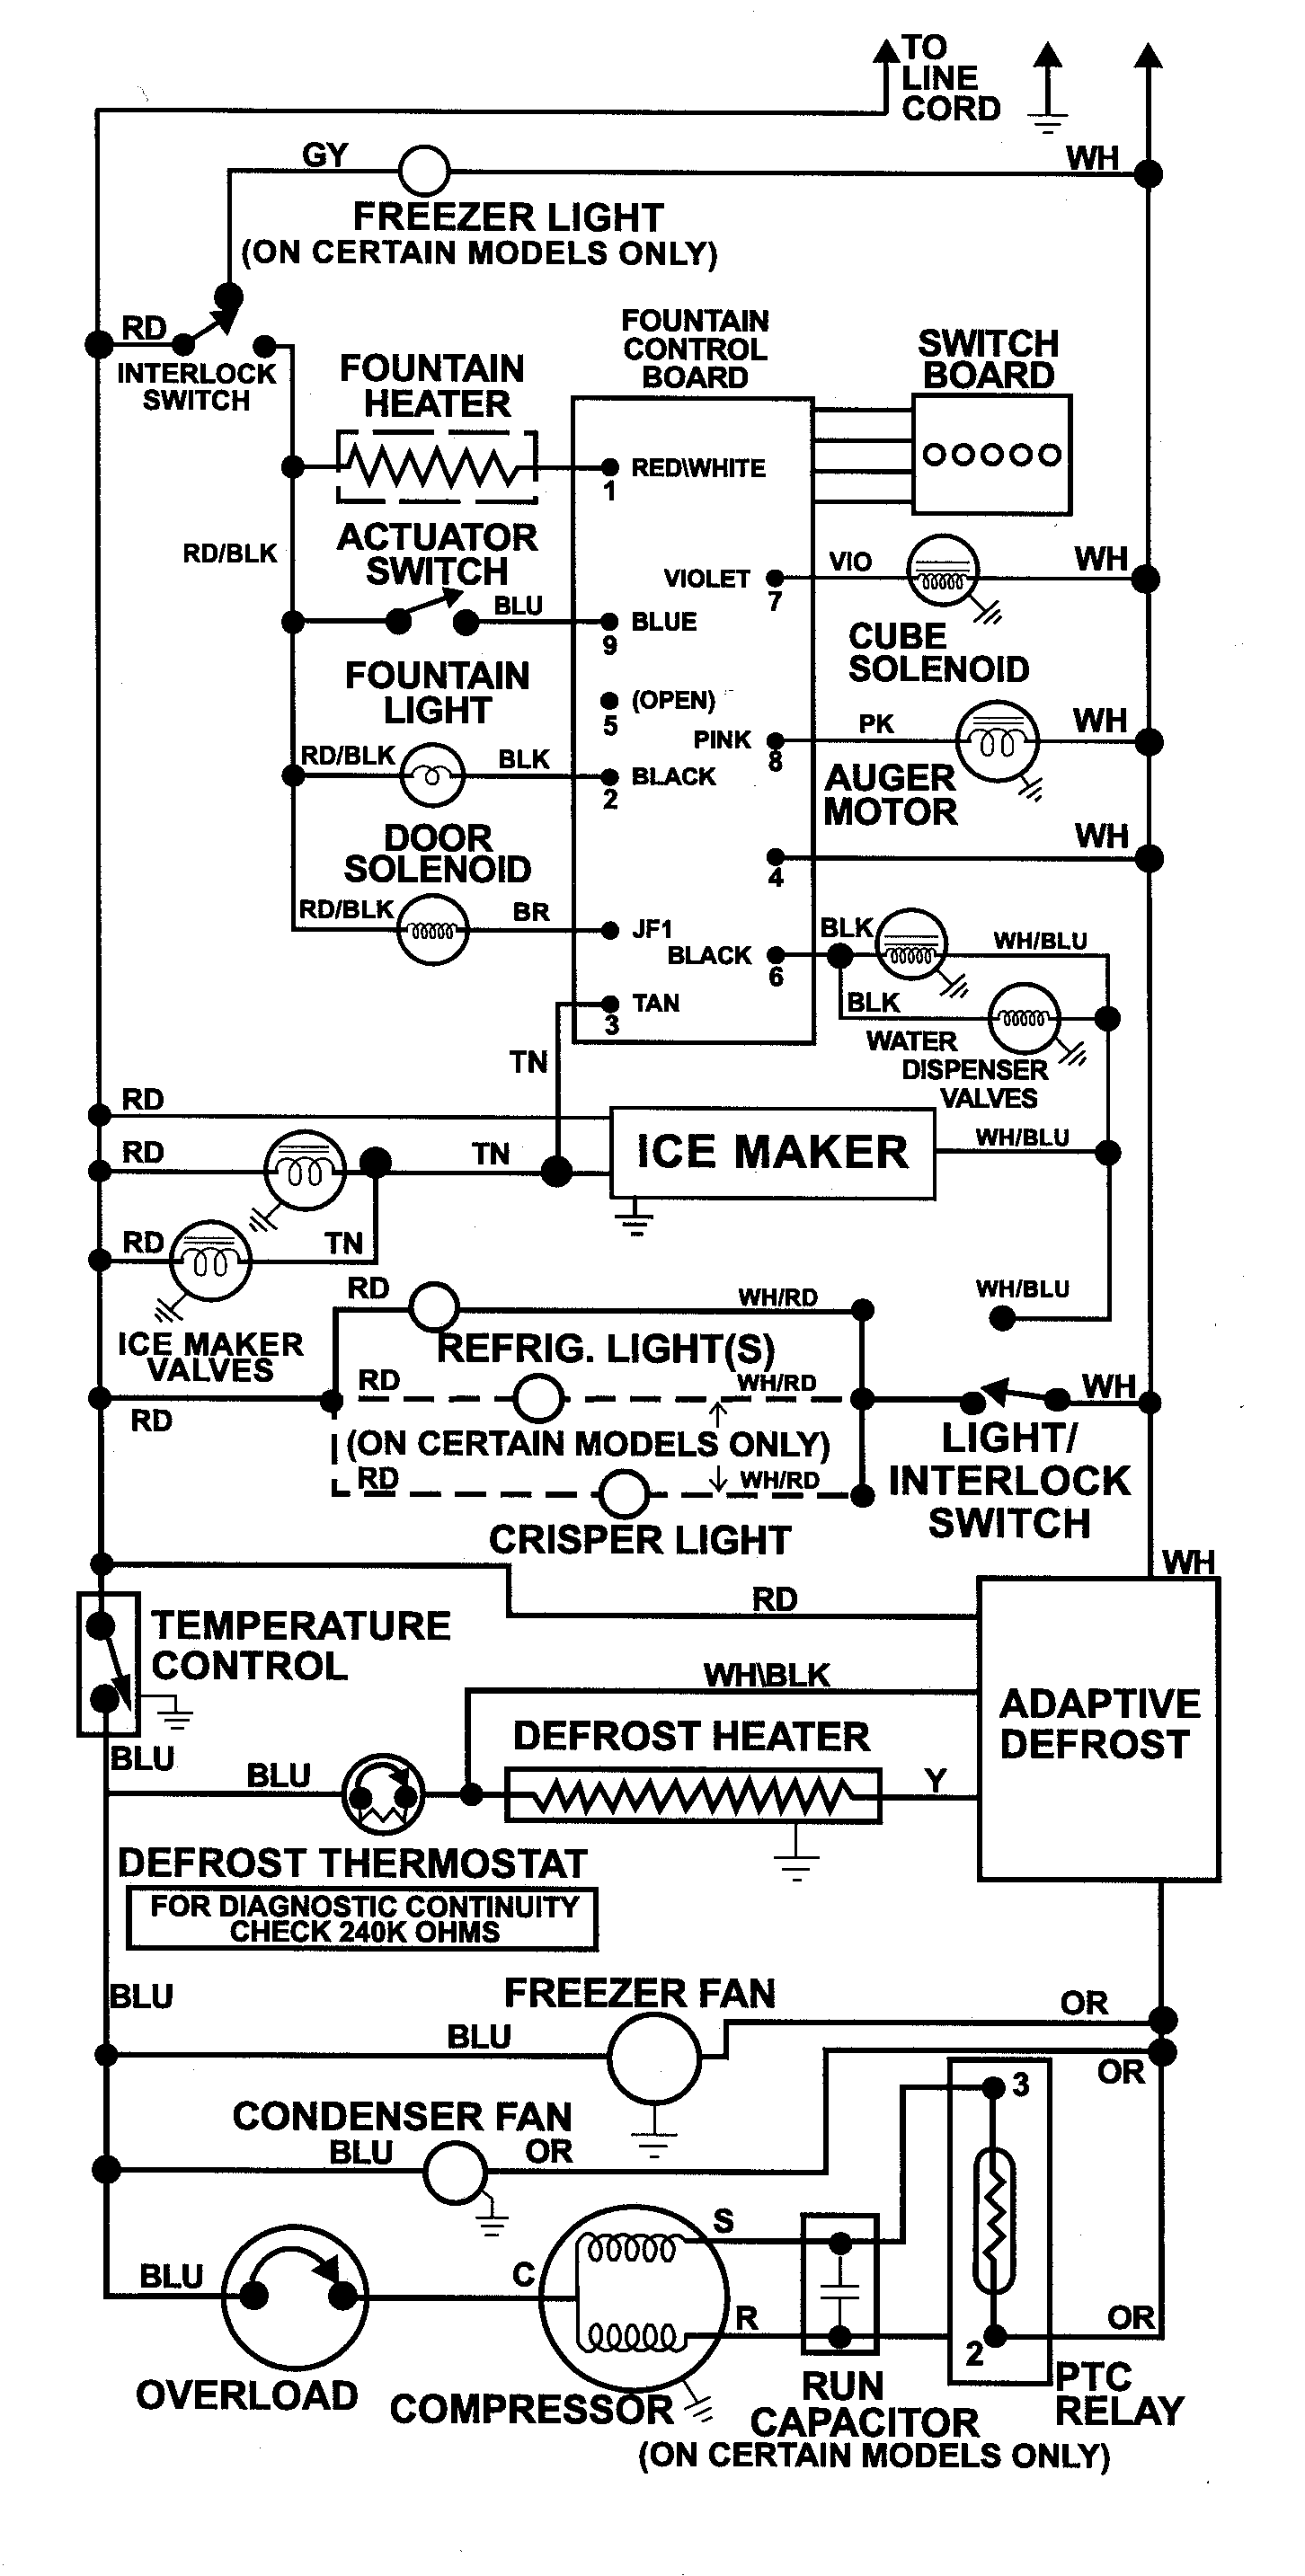 hight resolution of wire diagram for ge refrigerator model 22 25